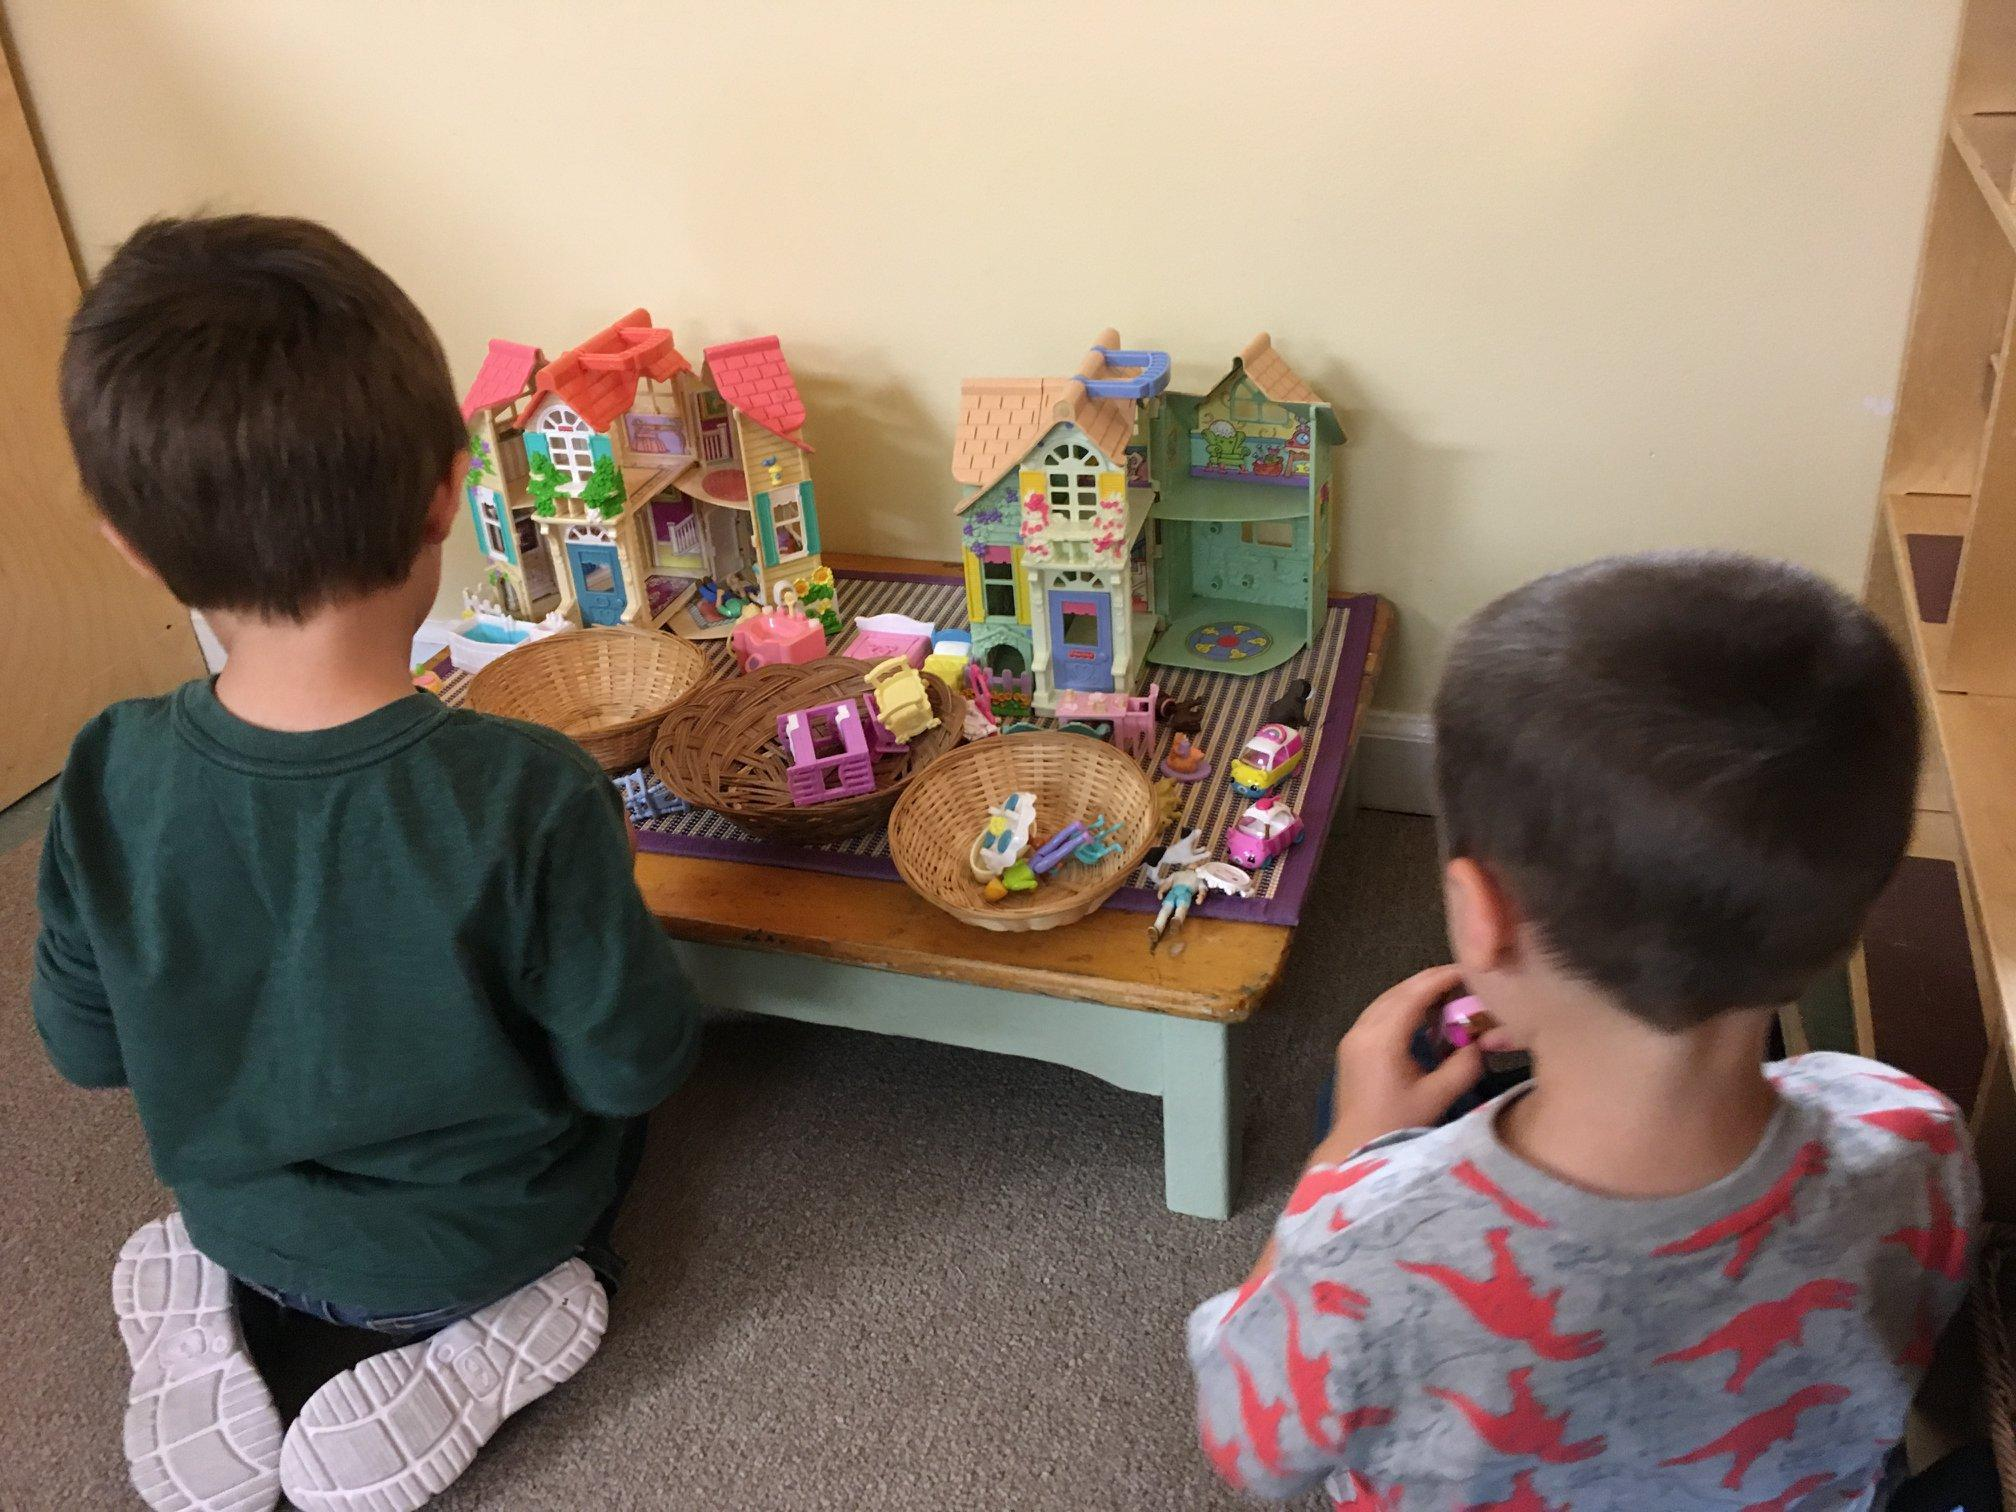 Two children playing with a doll house